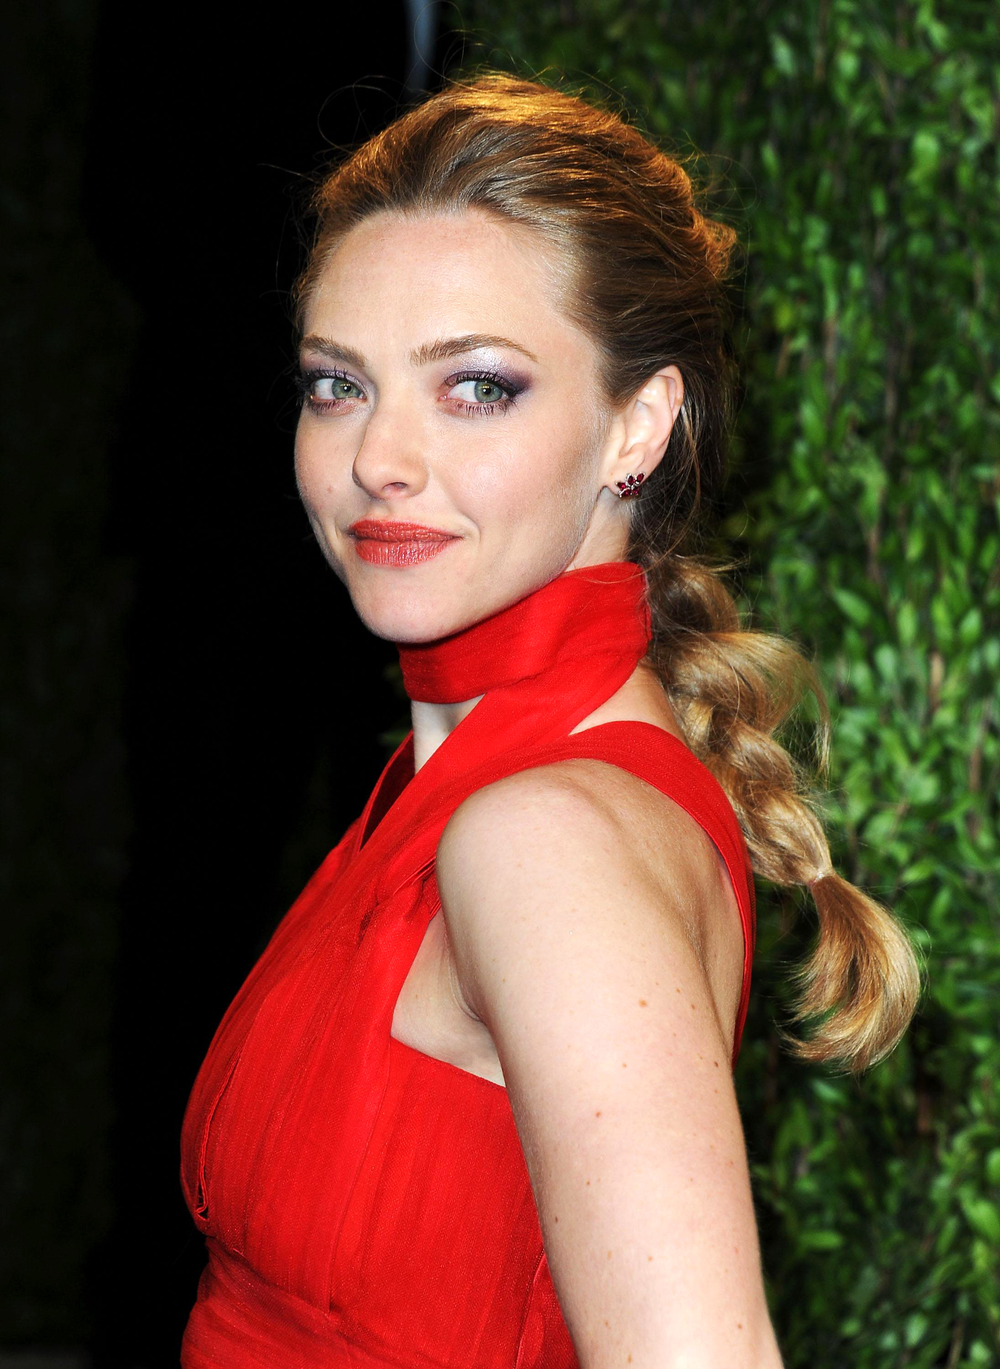 201302_ASEYFRIED_VFOSCARS_JC_MB_01.jpg